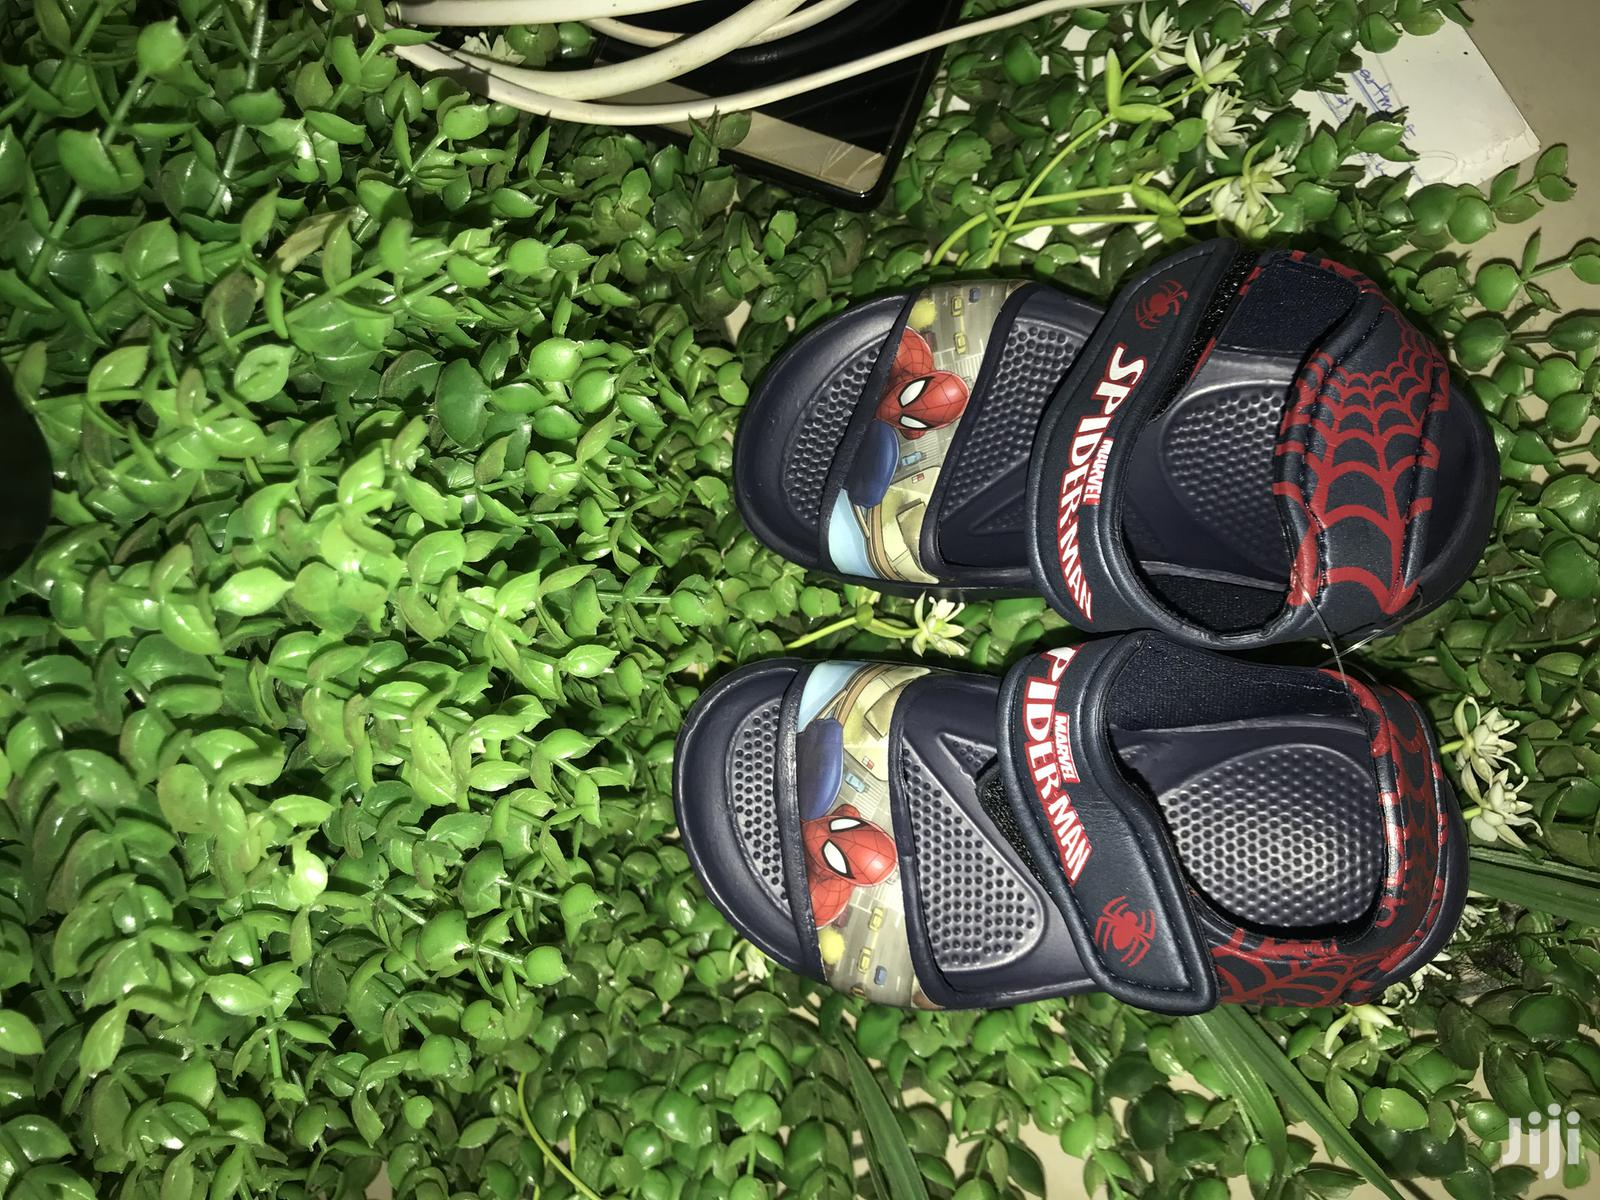 Kids Shoes And Sandals At Give Away Price | Children's Shoes for sale in Accra Metropolitan, Greater Accra, Ghana